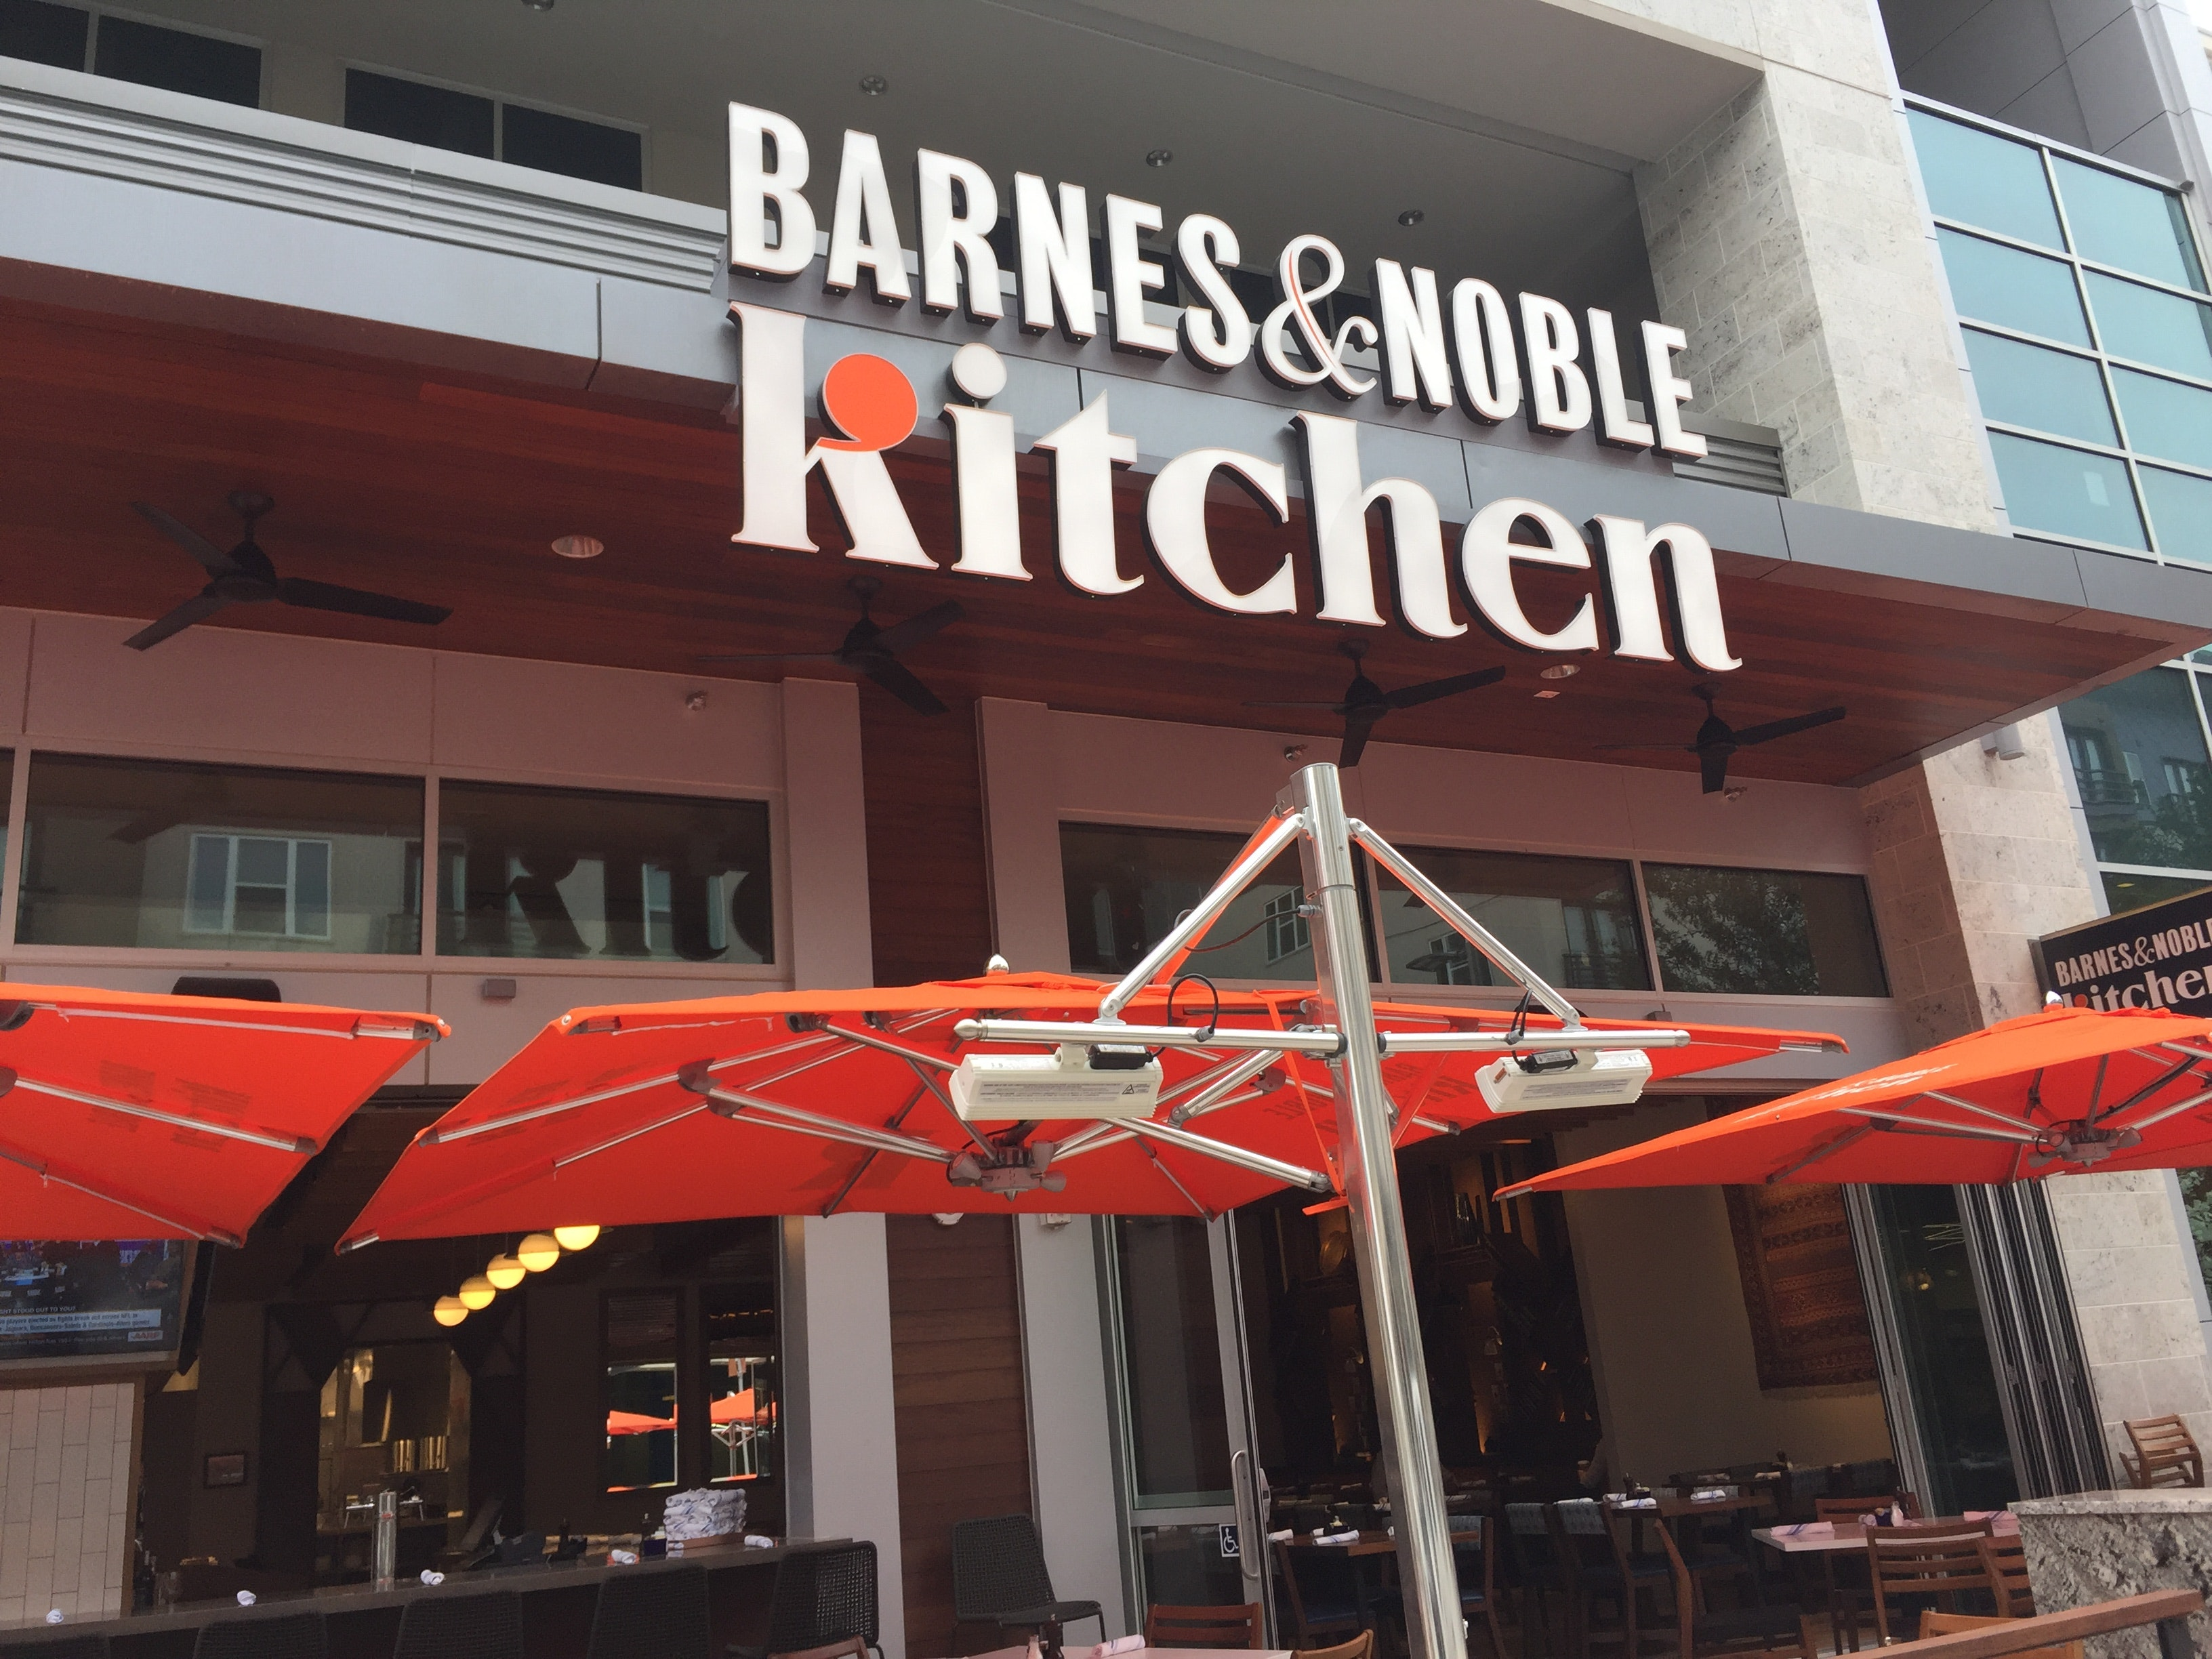 barnes \u0026 noble kitchen makes its texas debut in plano\u0027s legacy westbarnes \u0026 noble kitchen makes its texas debut in plano\u0027s legacy west with avocado toast and graphic novels retail dallas news